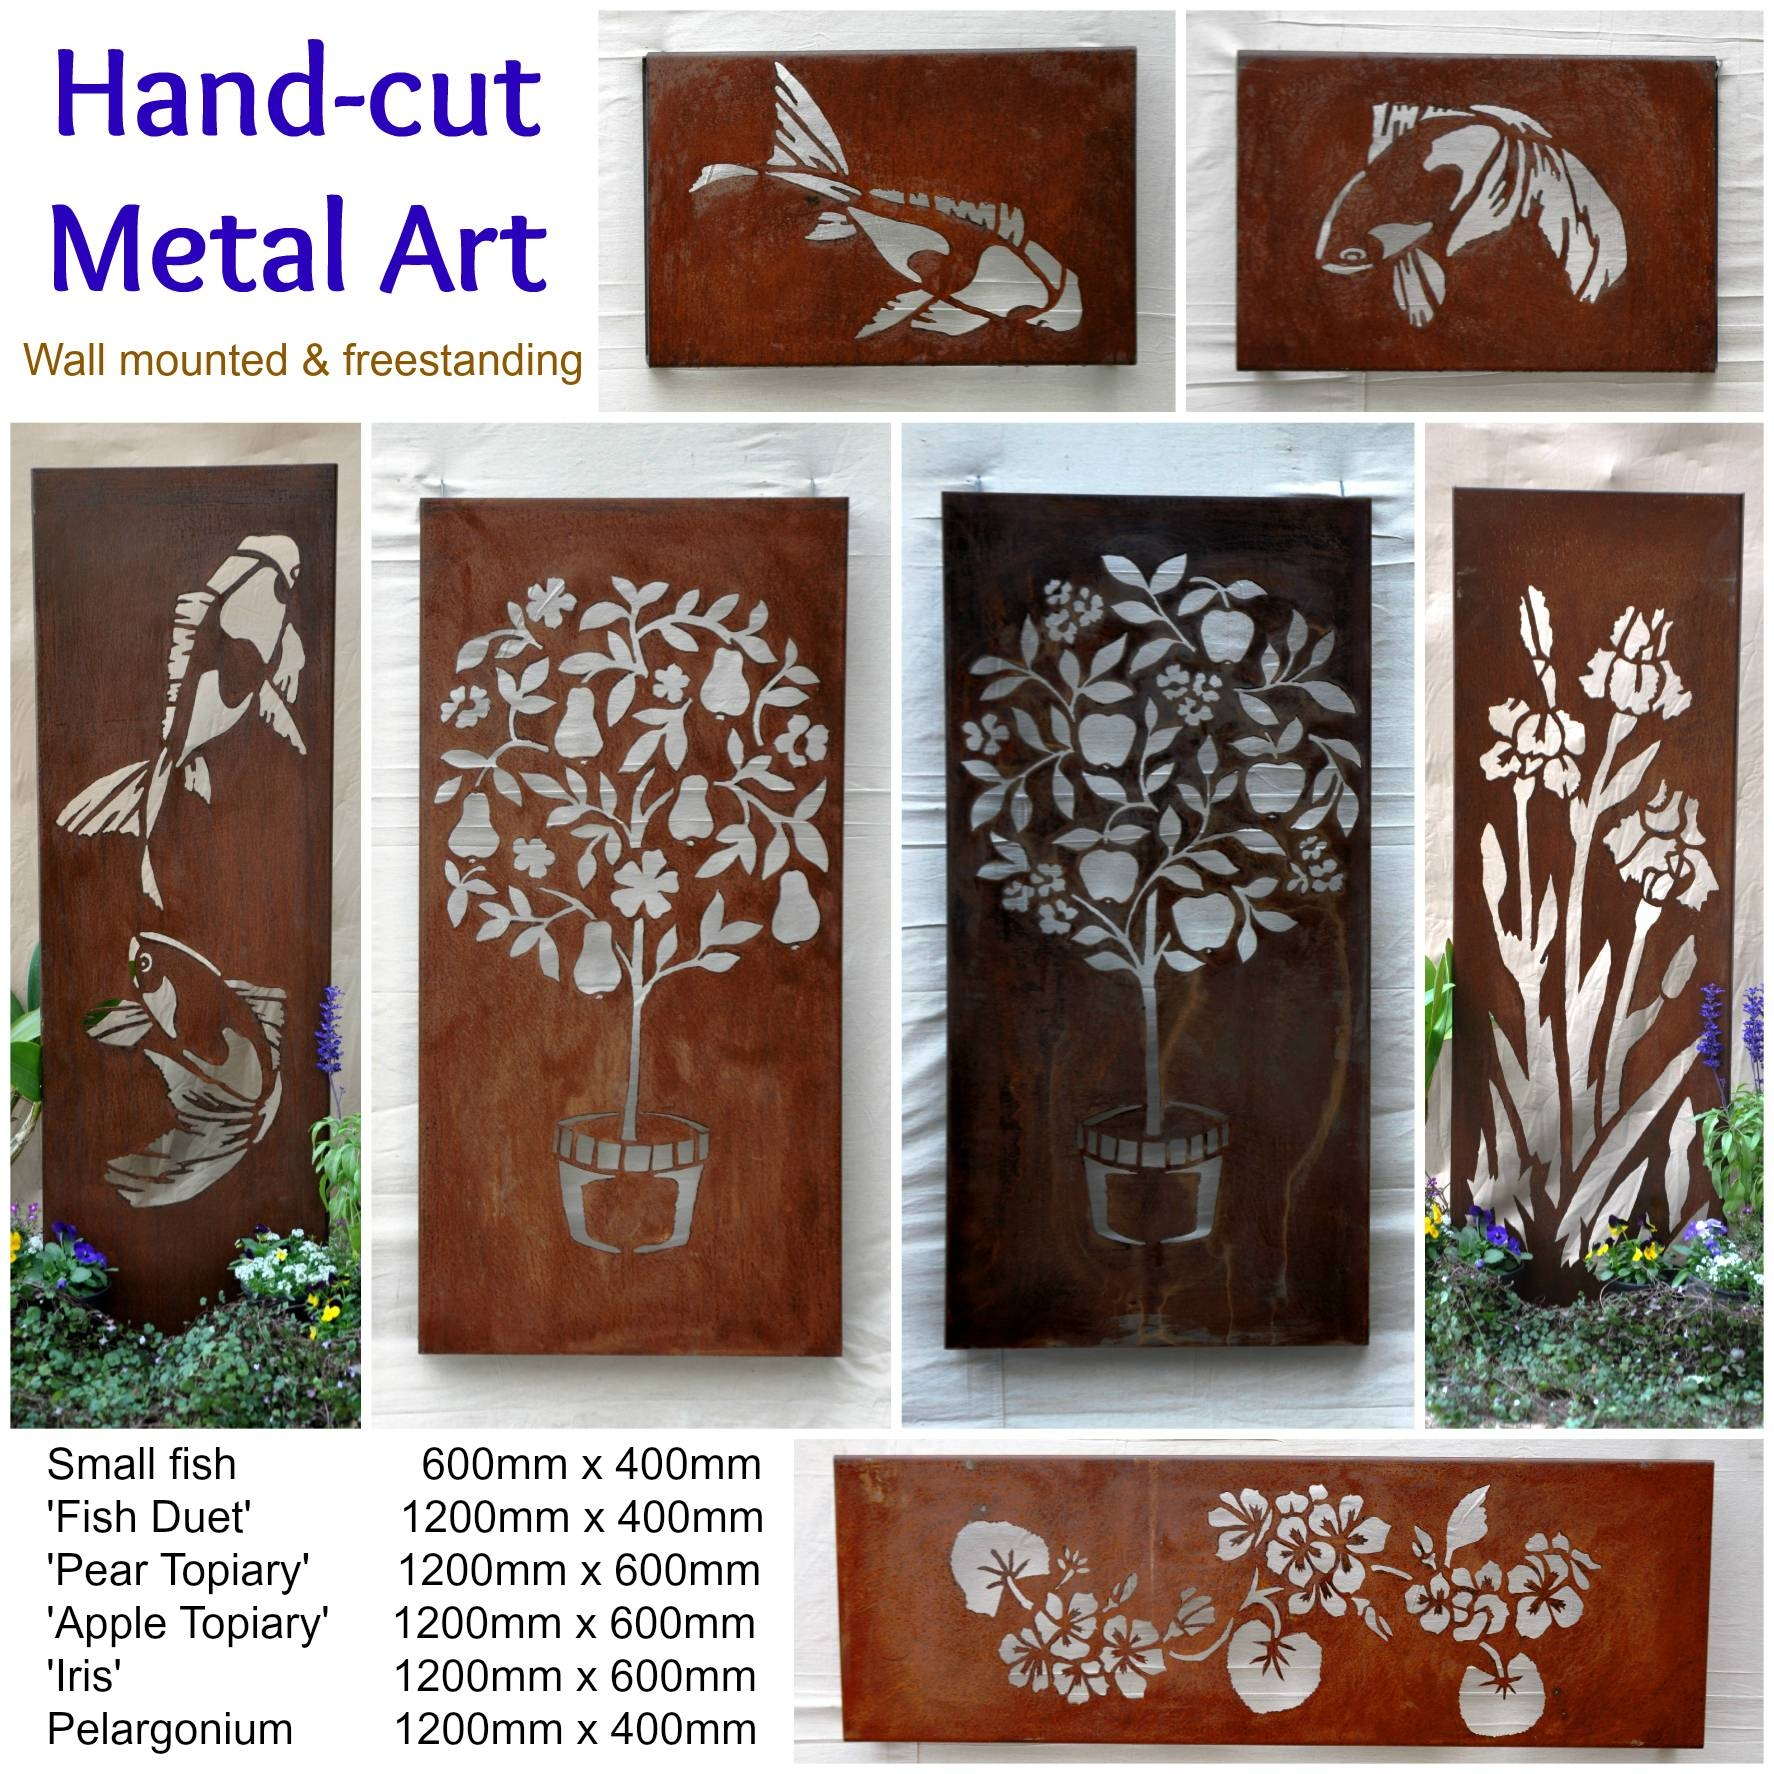 Australian Metal Artwork, Garden Art, Metal Wall Art | Farmweld Throughout Most Popular Rusted Metal Wall Art (View 15 of 20)